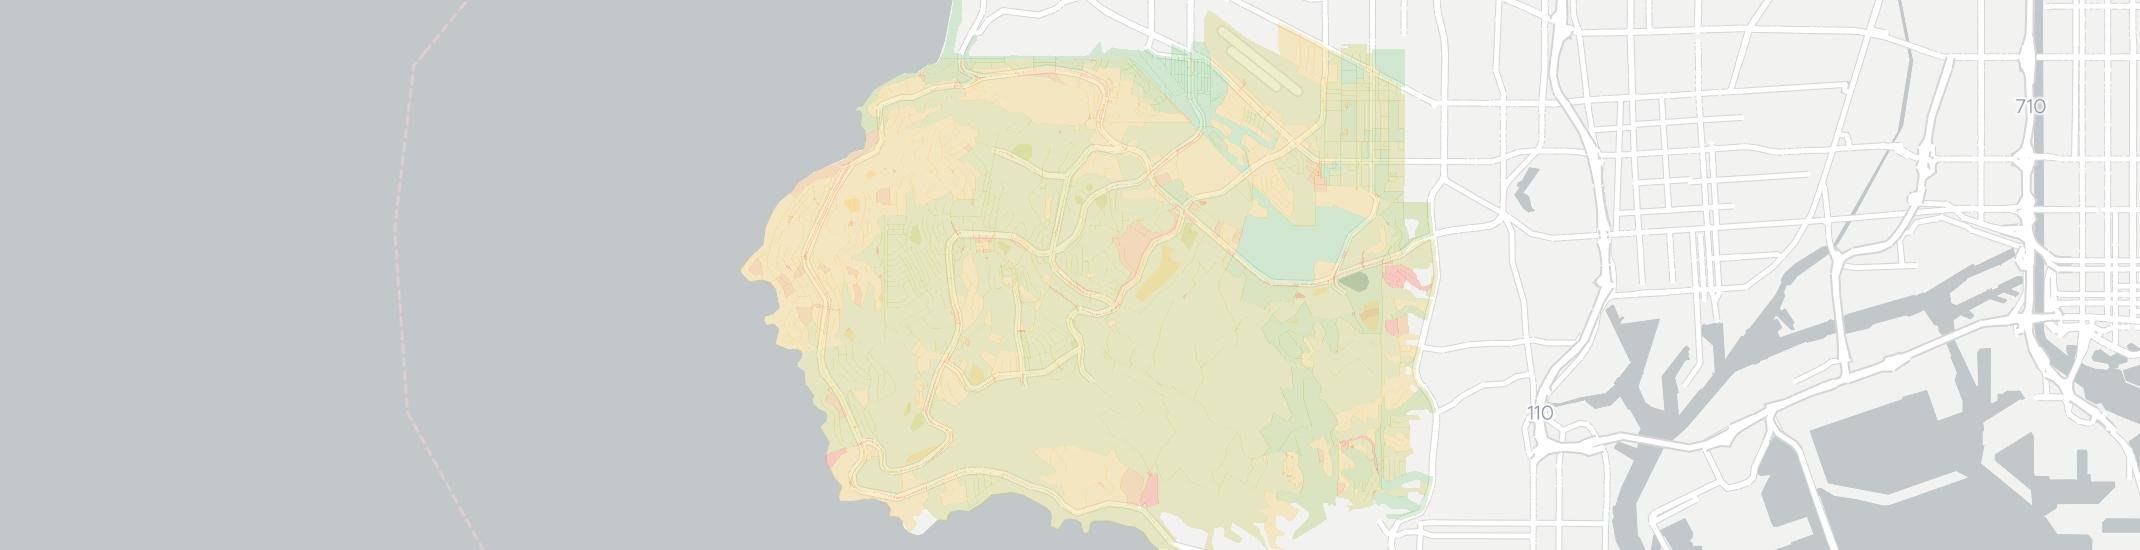 Palos Verdes Peninsula Internet Competition Map. Click for interactive map.